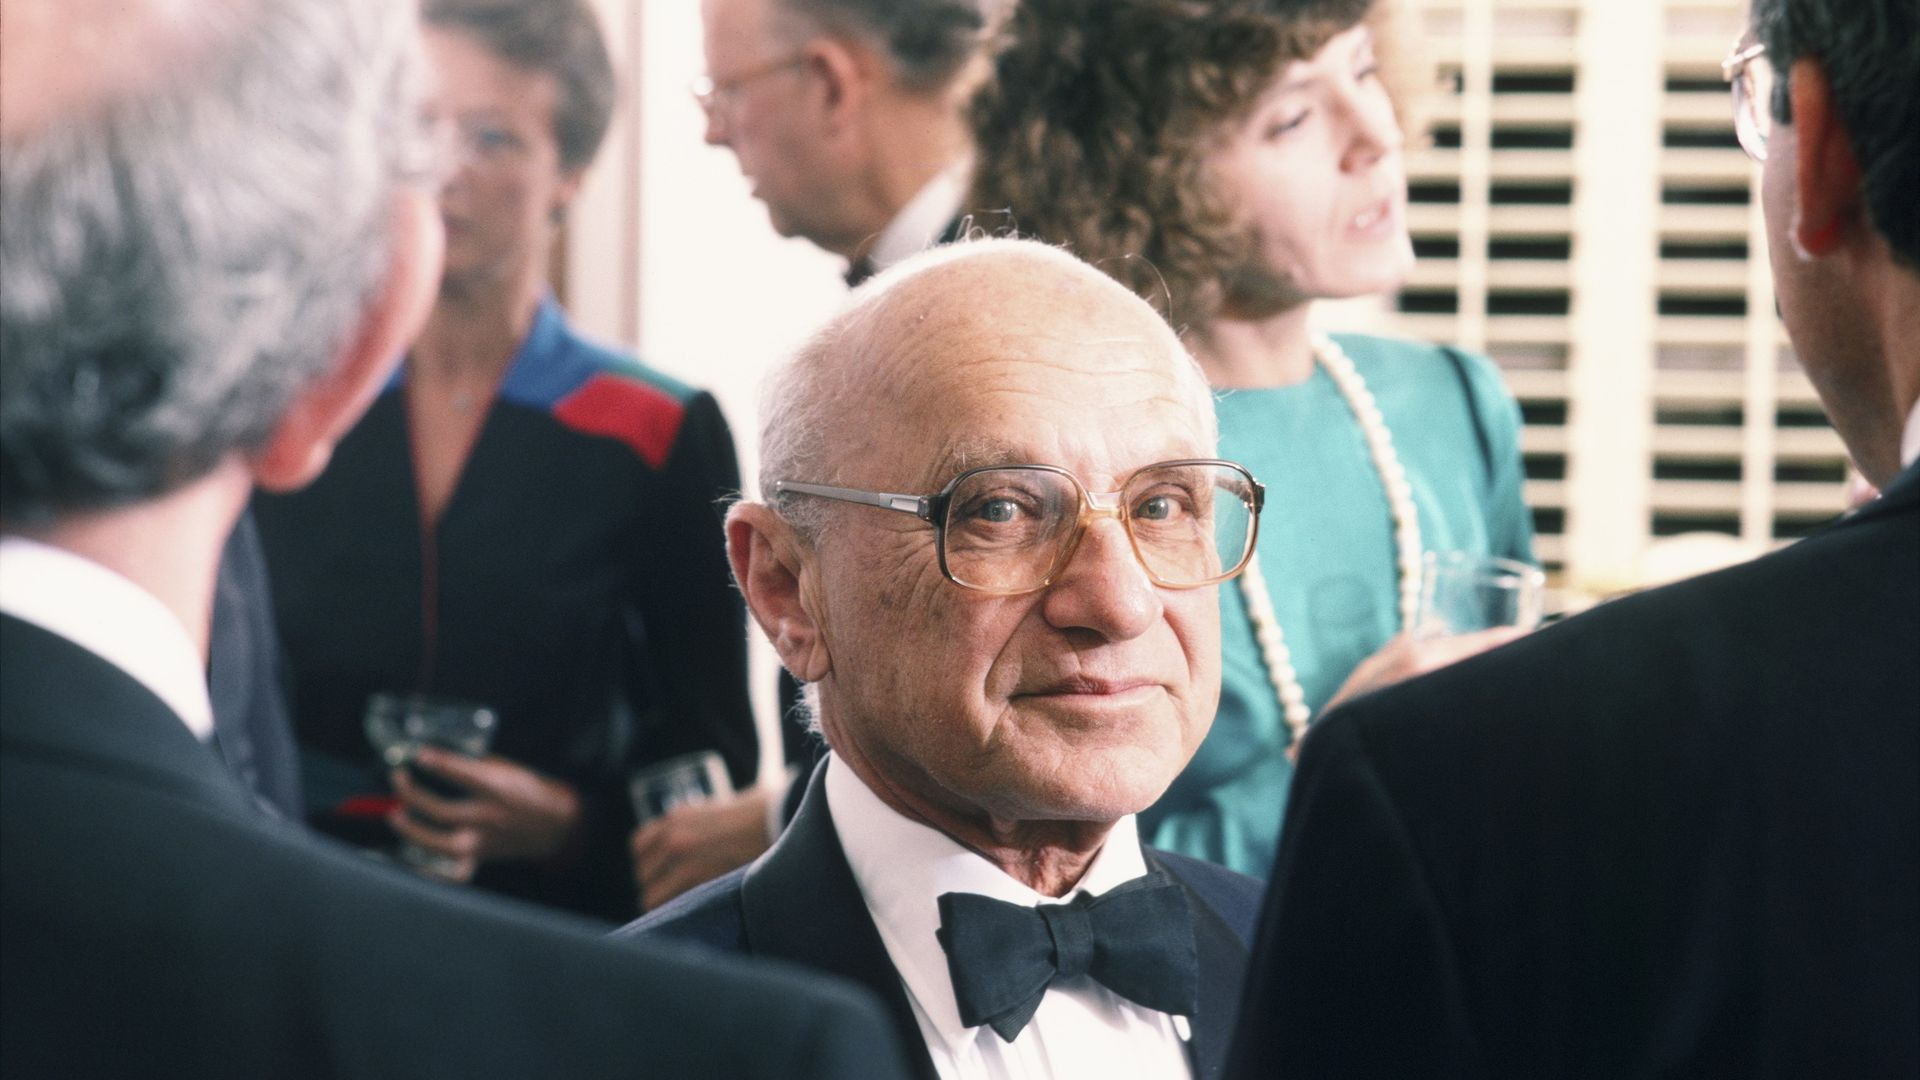 Milton Friedman in black tie